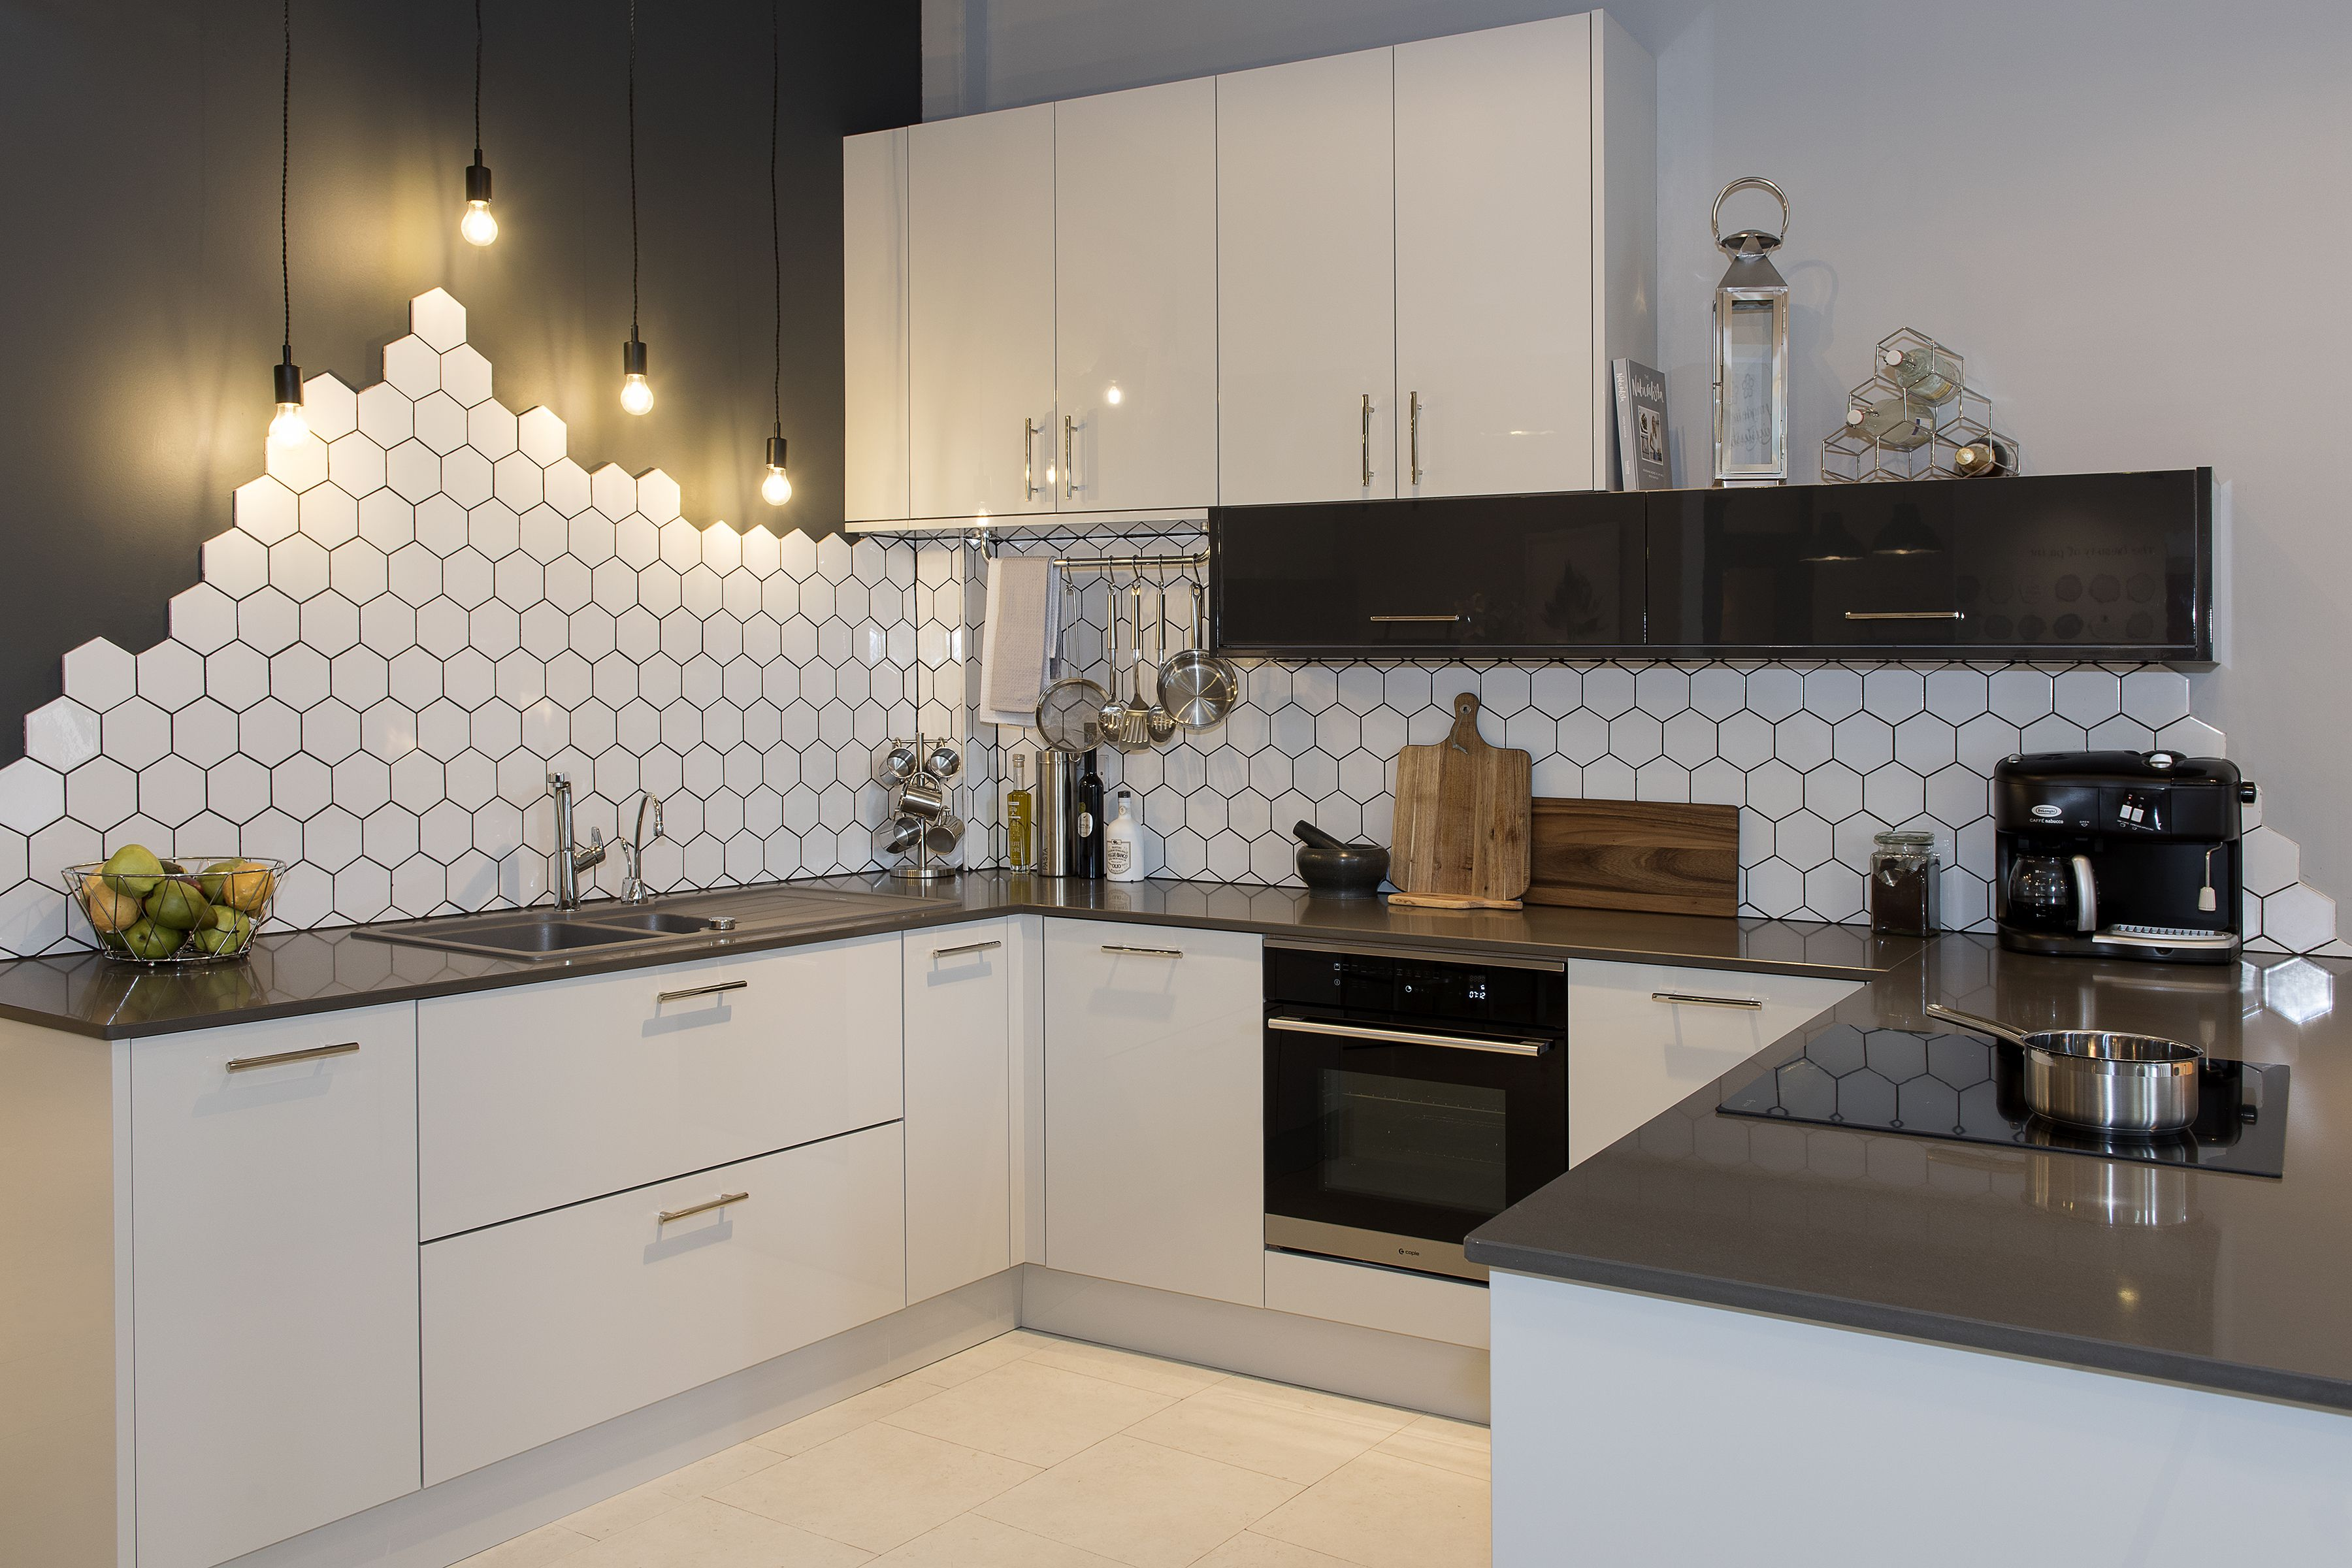 For A Contemporary Kitchen With Sophistication Choose The Loxley Gloss In White This Modern Kitchen Cabinet Design Kitchen Cabinet Design Contemporary Kitchen